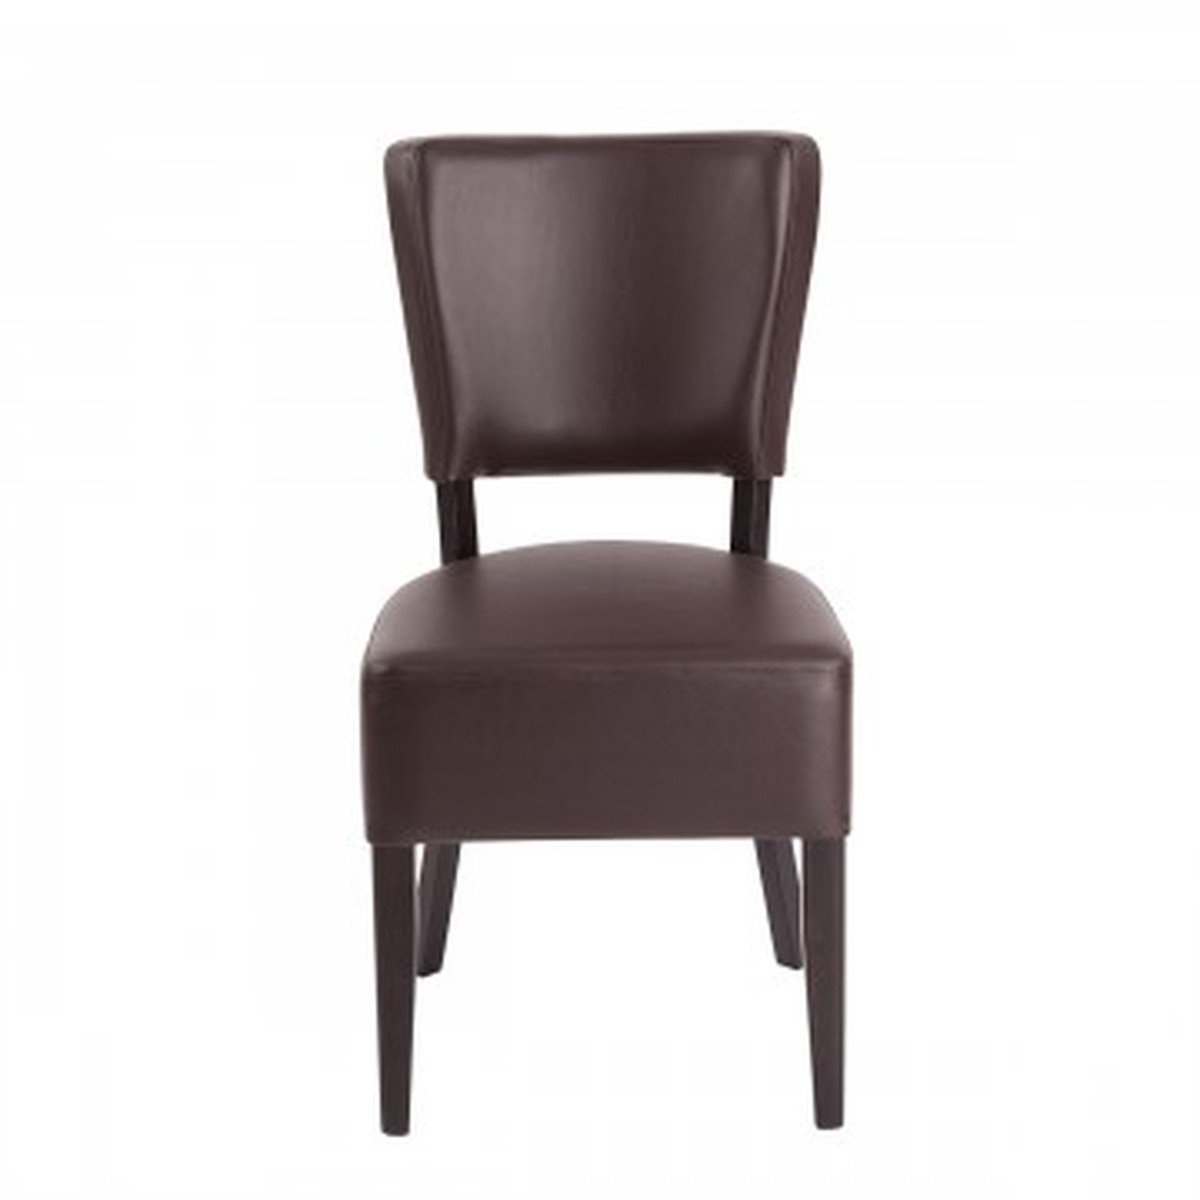 Restaurant Chairs For Sale Secondhand Hotel Furniture Dining Chairs 100x Trent